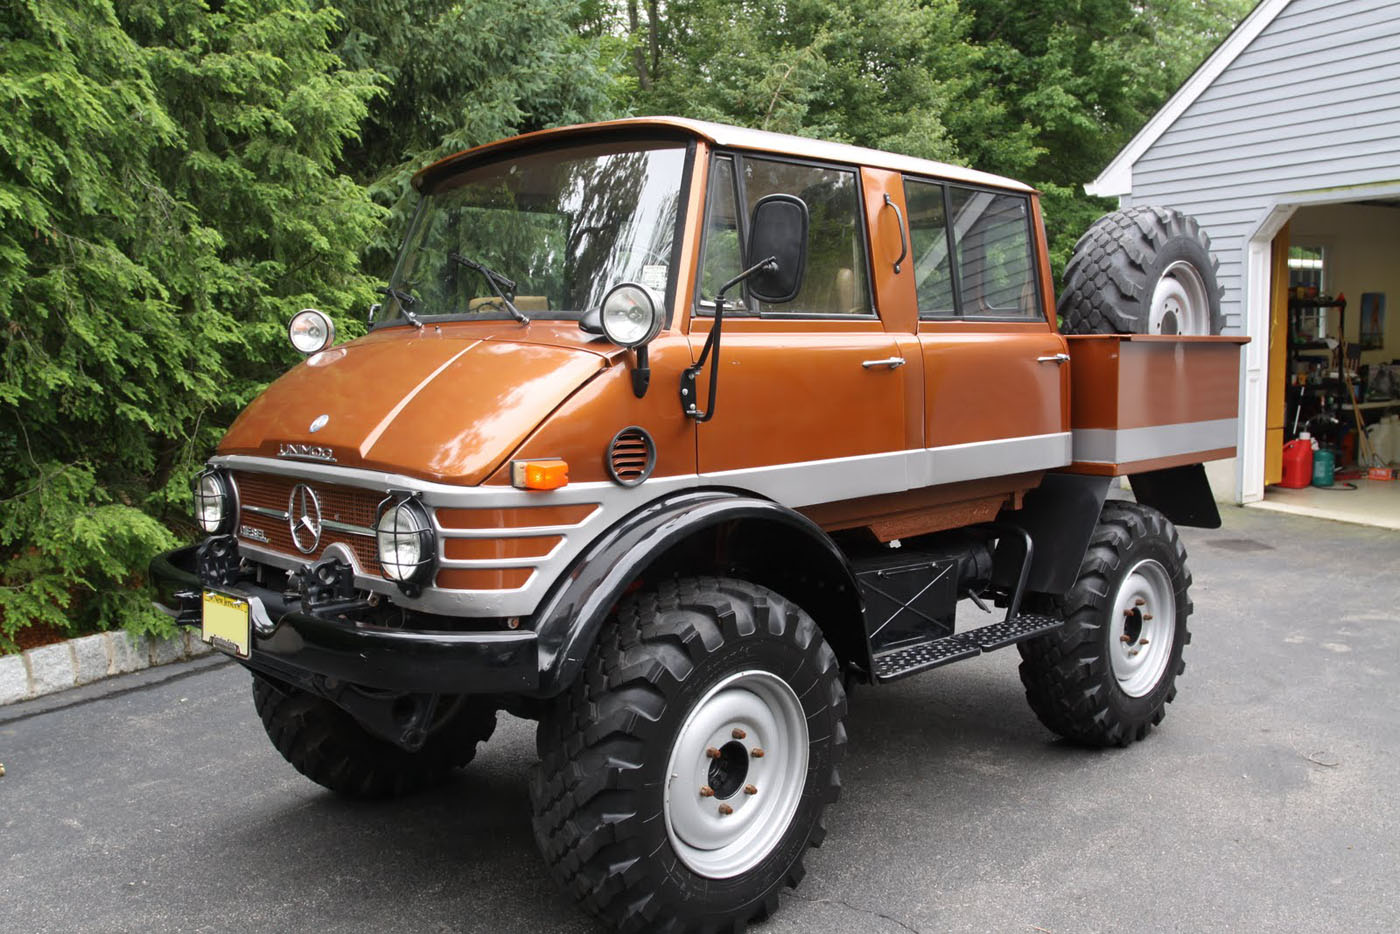 spotted 1974 unimog 406 doka for sale west county explorers club. Black Bedroom Furniture Sets. Home Design Ideas